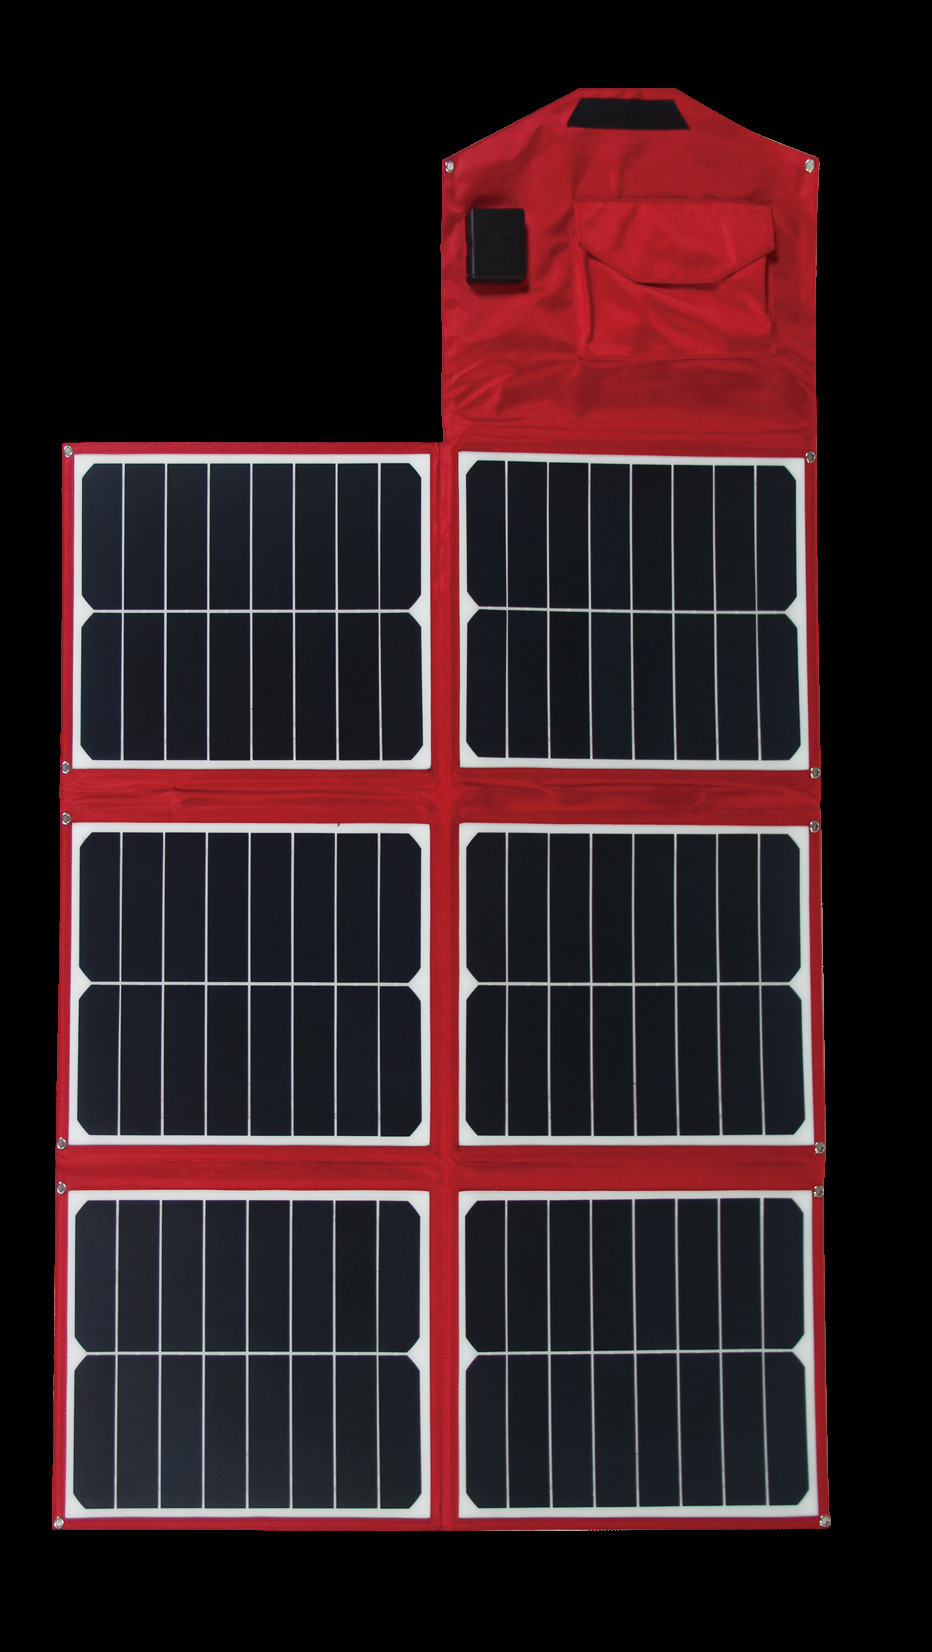 china factory 90W sunpower solar cell fabric folding solar panel for charging electrical equipment battery